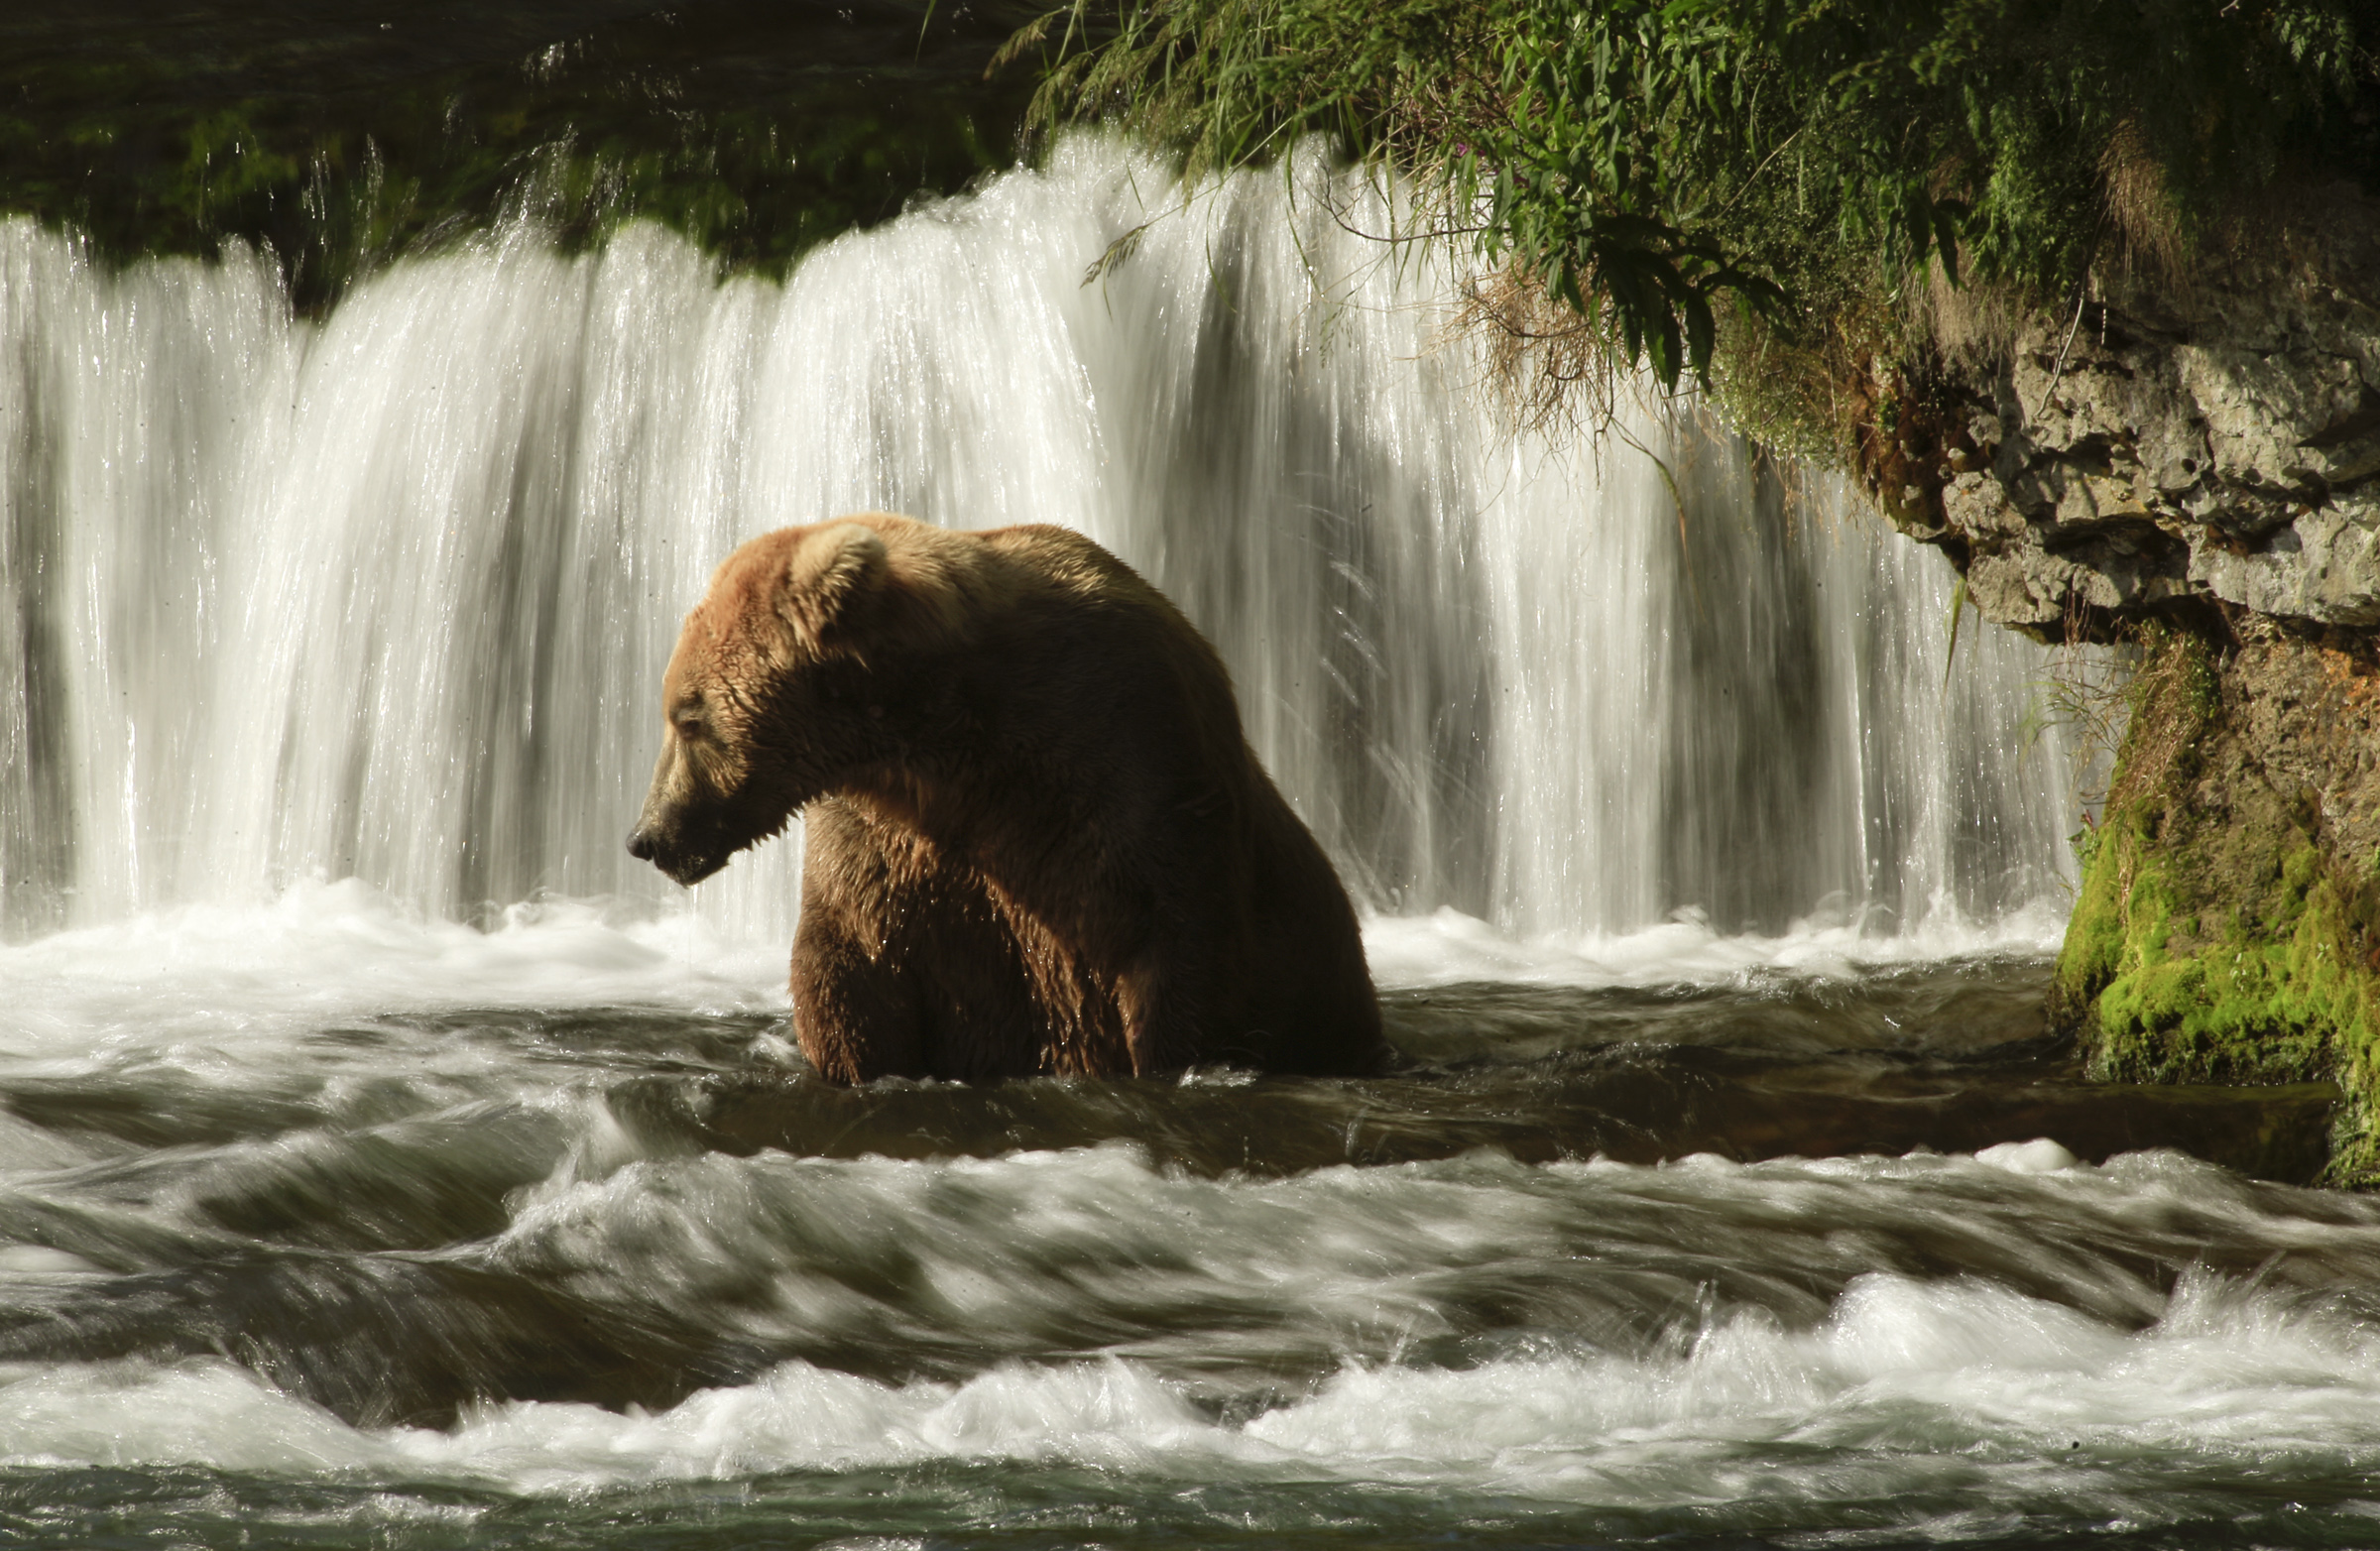 KATMAI, ALASKA, JULY 20, 2014: One of the most famous viewing spots for the Coastal Brown Bear in Al